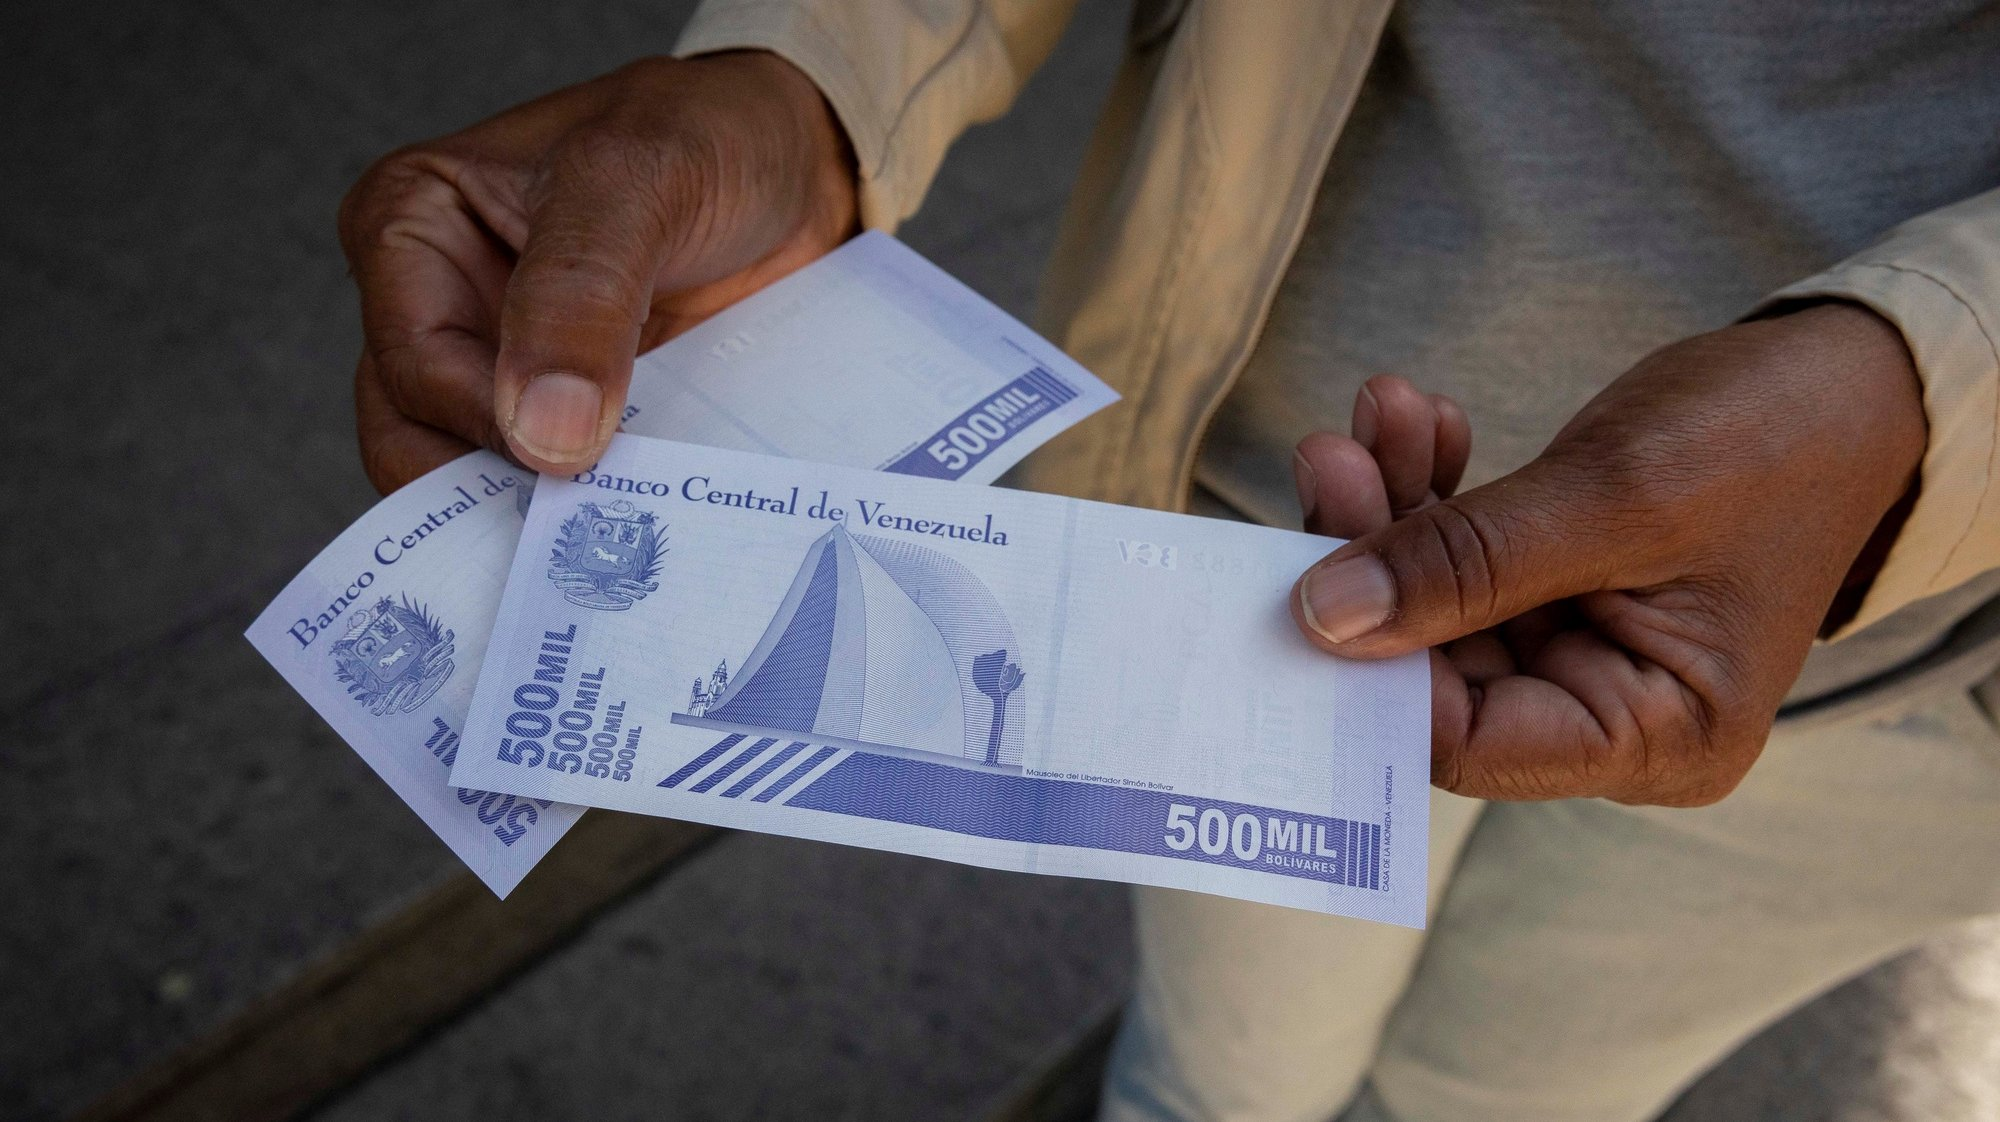 epa09084341 A person shows the new 500,000 bolivar notes, in Caracas, Venezuela, 15 March 2021 (reissued 19 March 2021). Venezuela, which is hit by high hyperinflation and US sanctions, has introduced a new 1,000,000 bolivar note alongside a 200,000 and a 500,000 note. The 1 million bill equals around 0,47 euro, which Venezuelans complain won't buy them much, recalling that the bolivar already lost eight zeros in the past two currency reconversions.  EPA/Rayner Pena